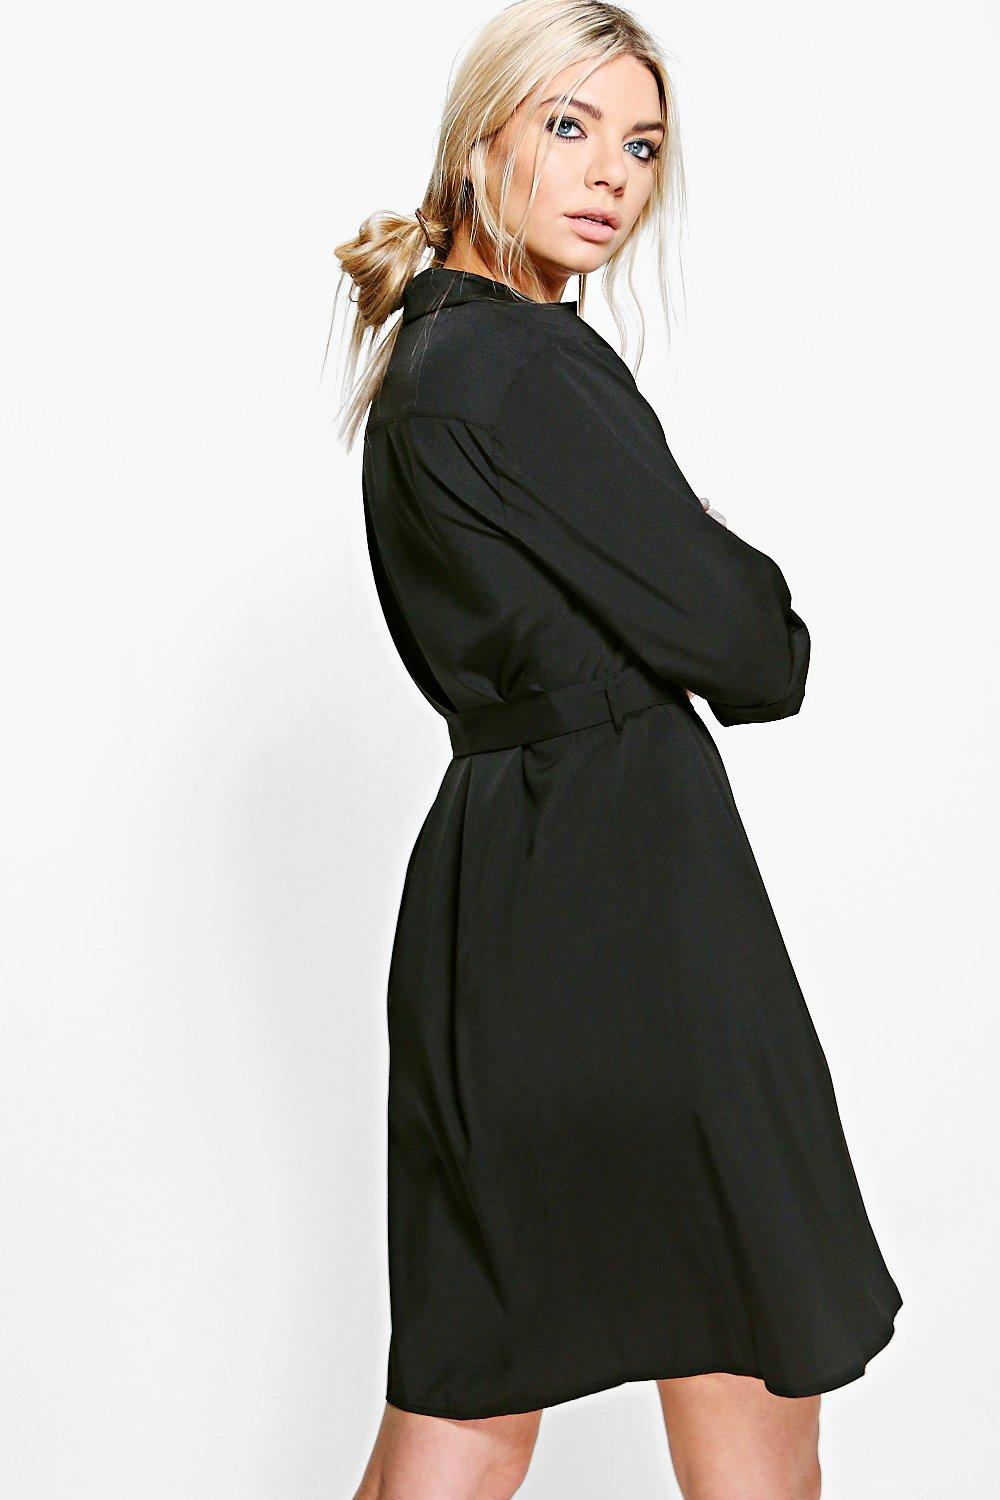 Creative Details About Boohoo Womens Camelia Lace Sleeve Belted Shirt Dress